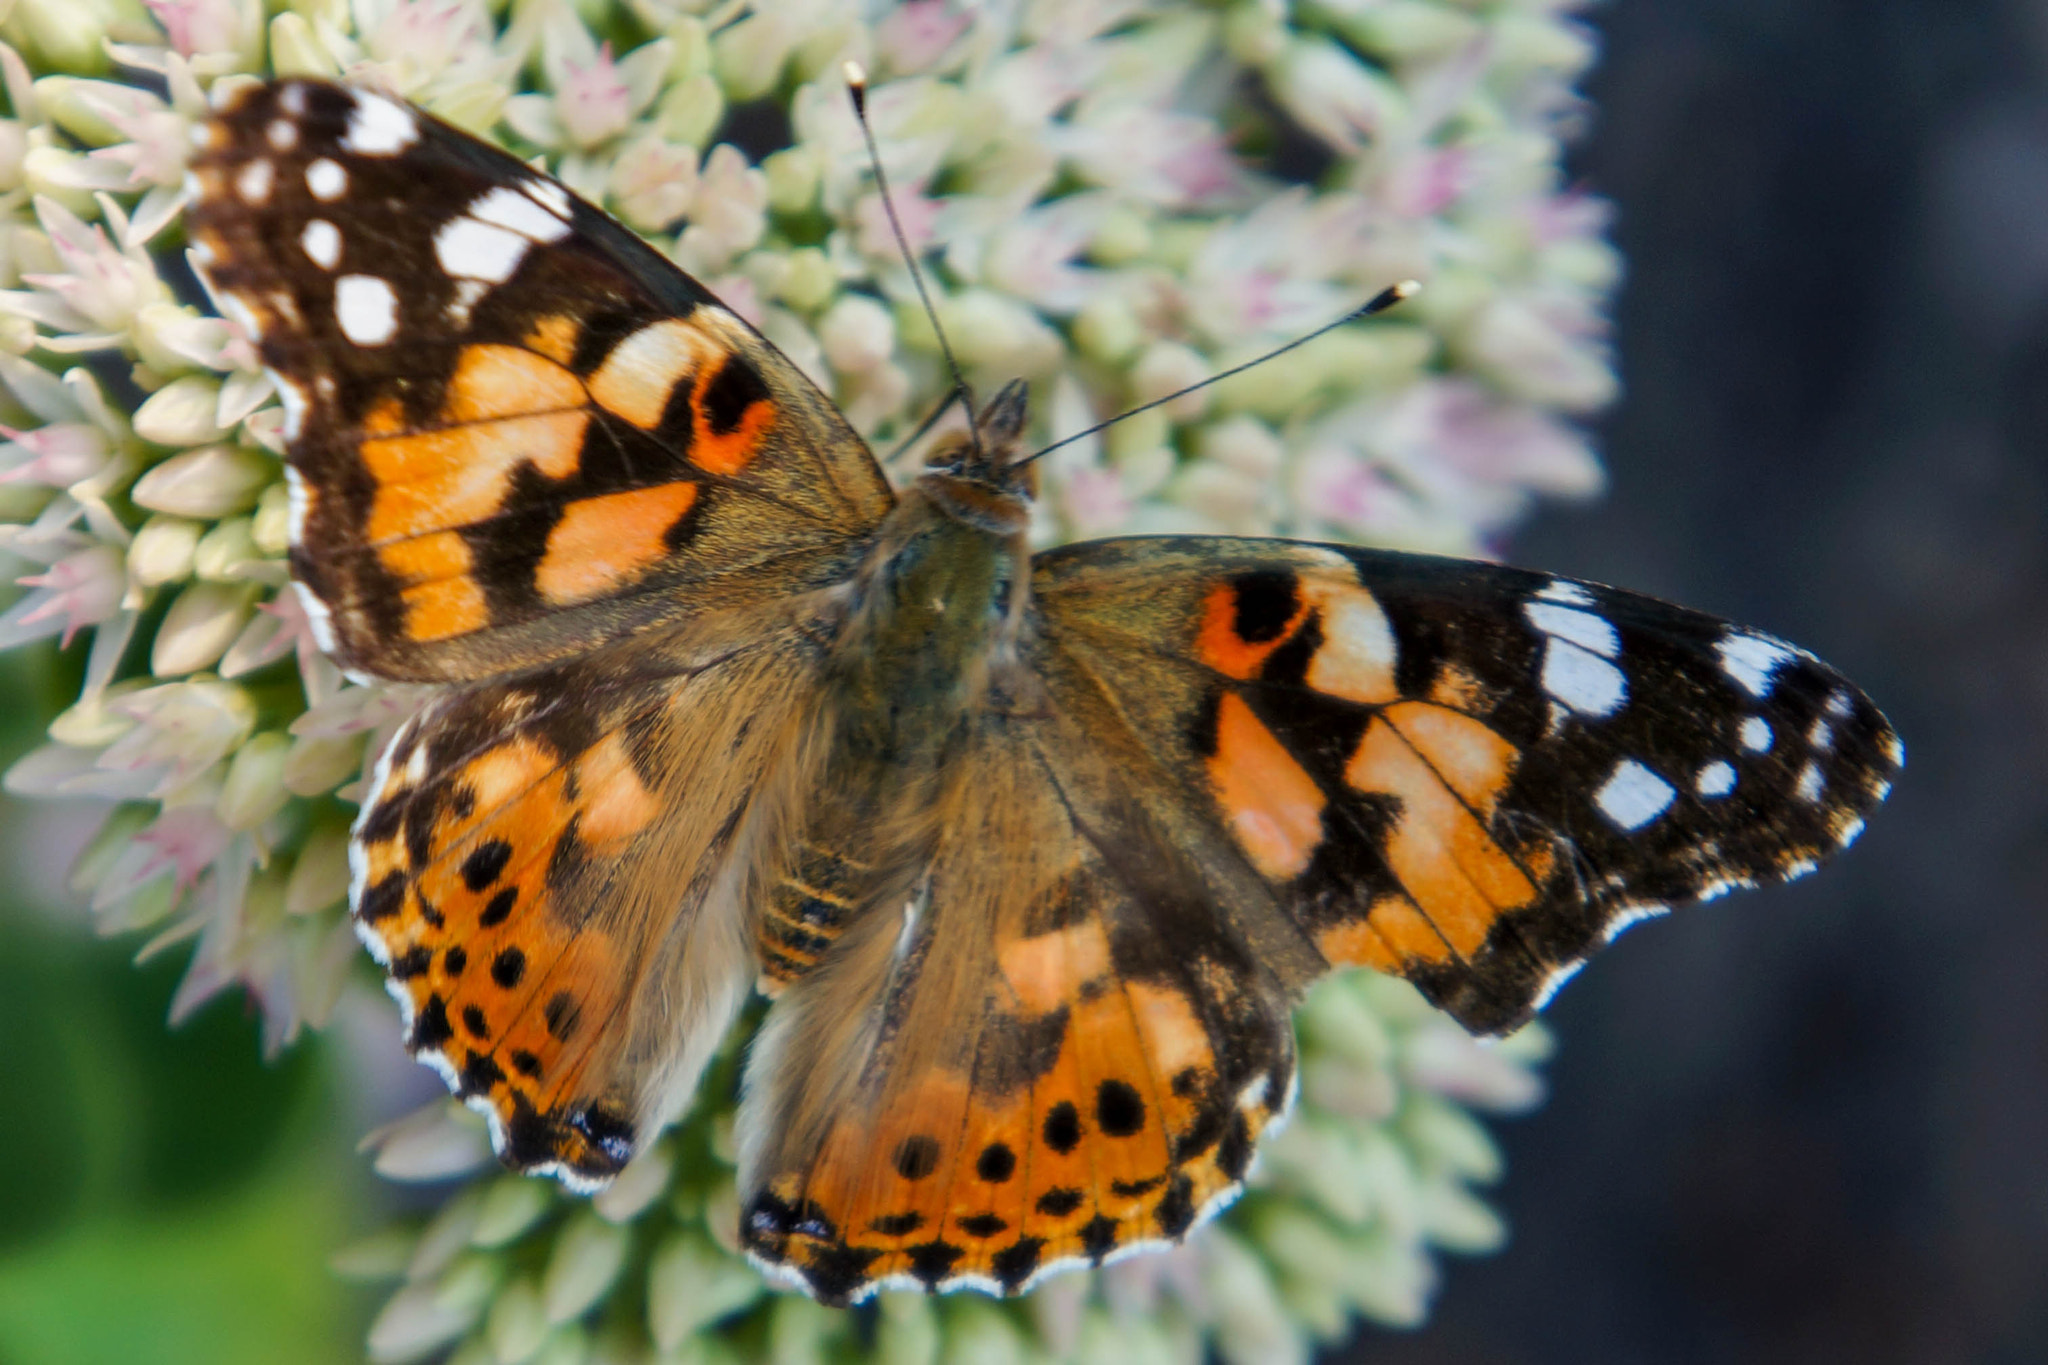 Photograph Painted Lady Butterfly by Alyssa Paraggio on 500px